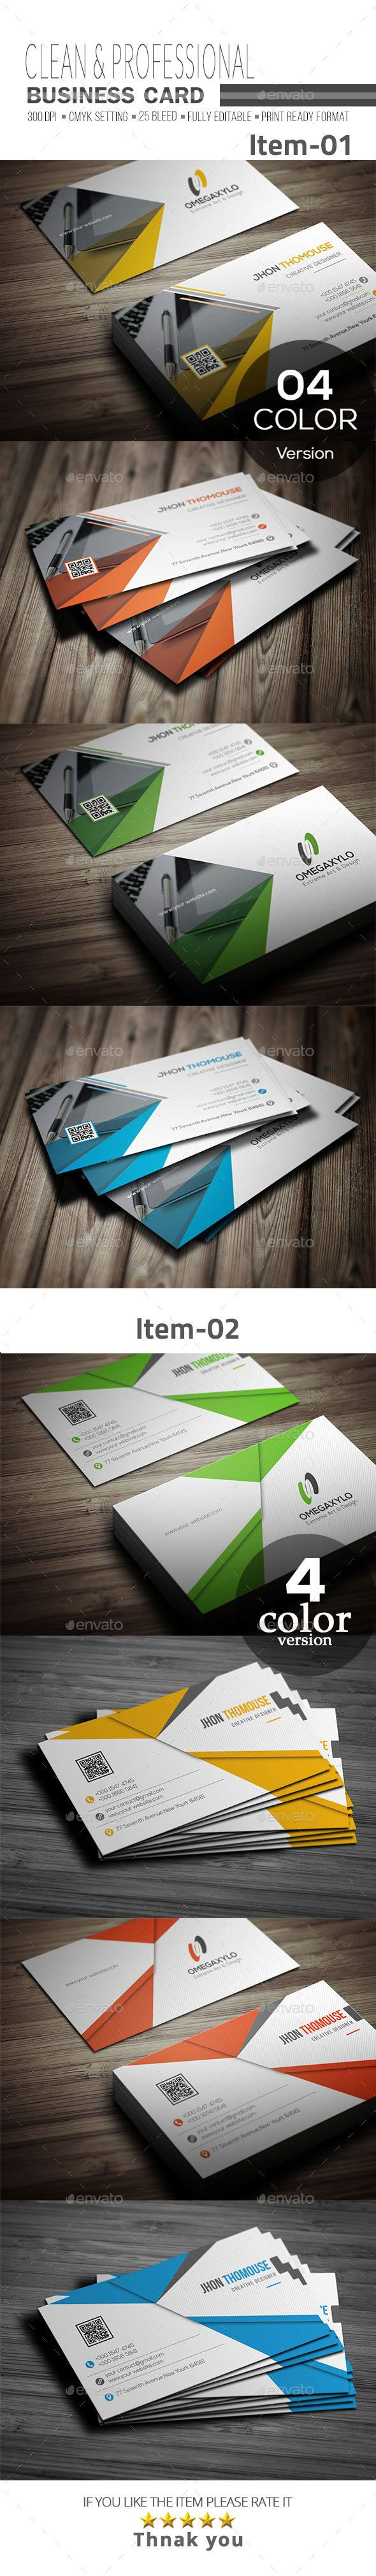 5114 best logos images on pinterest corporate business business